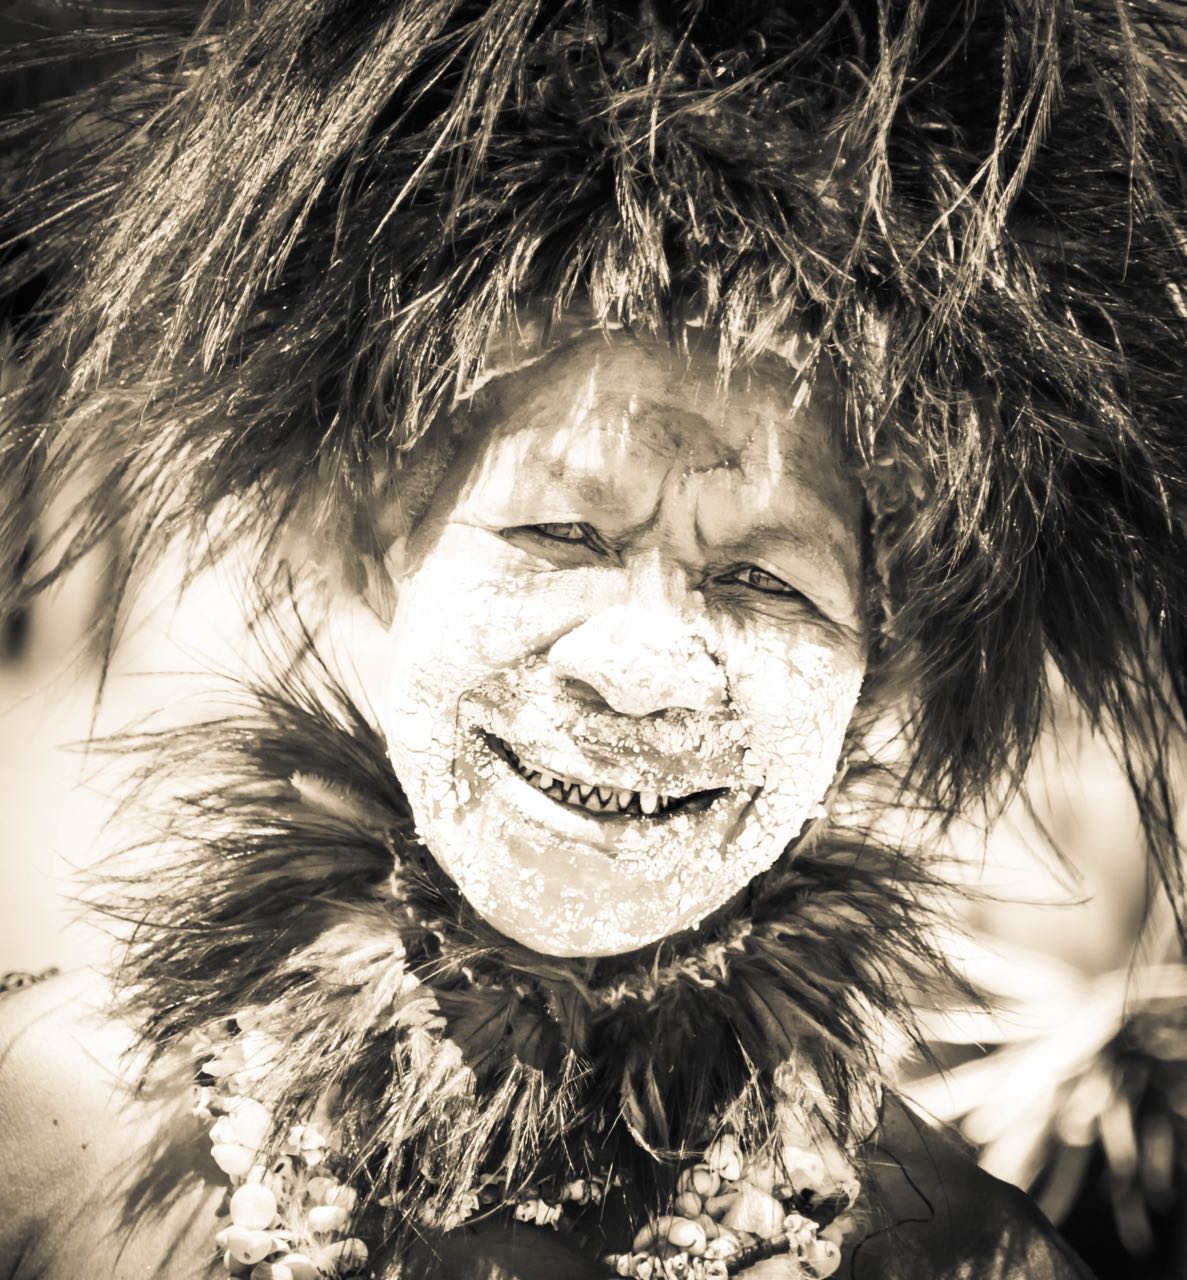 Stunning pictures from Goroka Festival 26